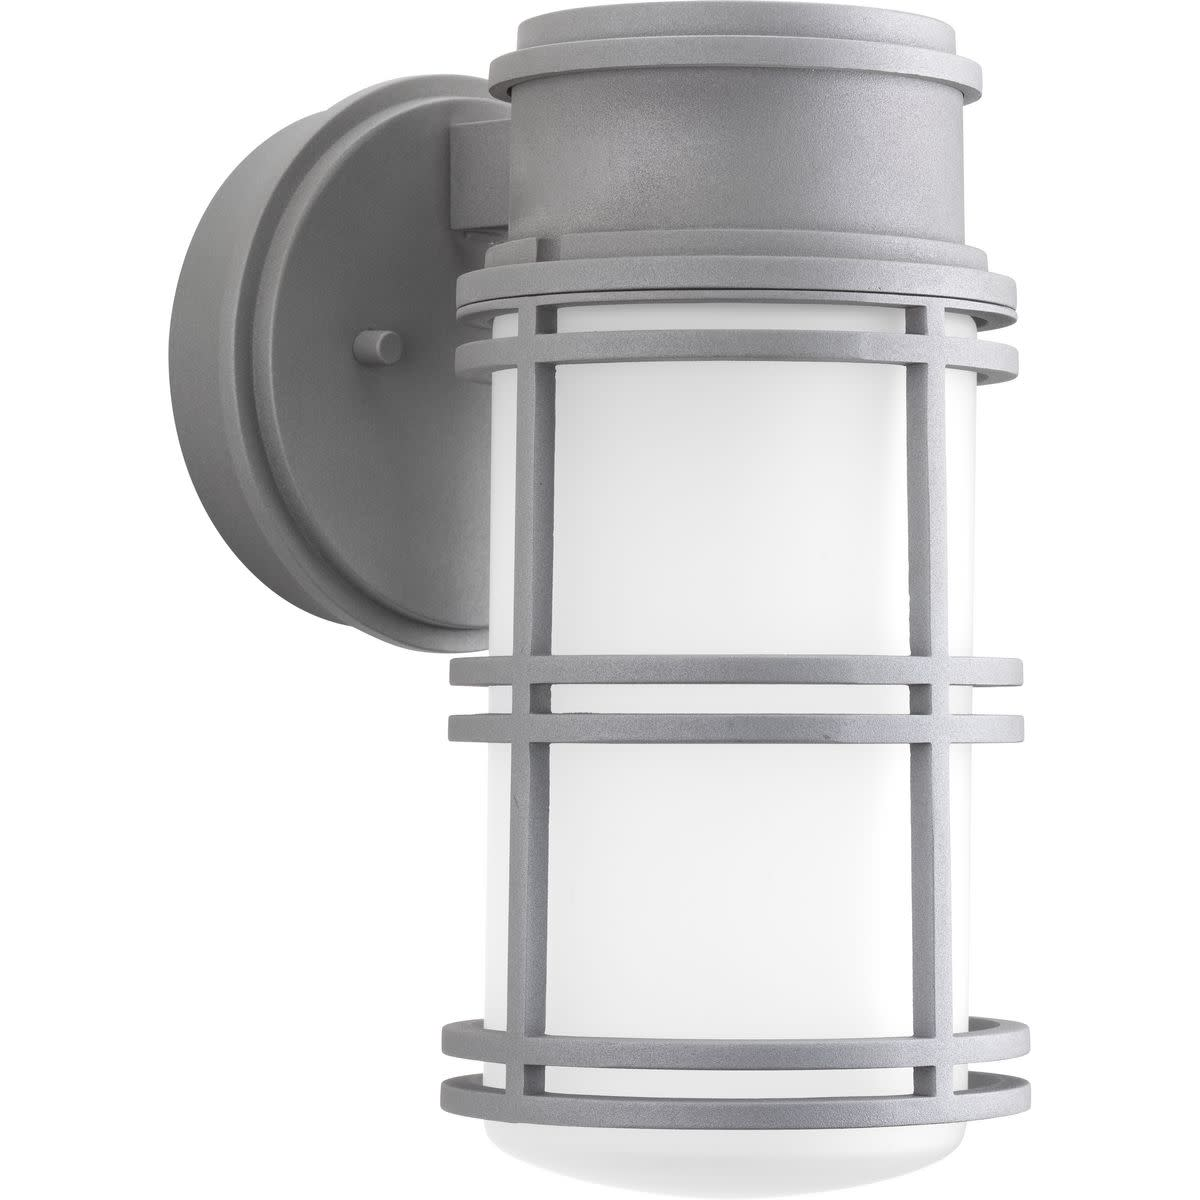 """Progress Lighting P5676-LED Bell 11"""" Tall Single Light LED Energy Star Outdoor Wall Sconce with Cylinder Shade"""